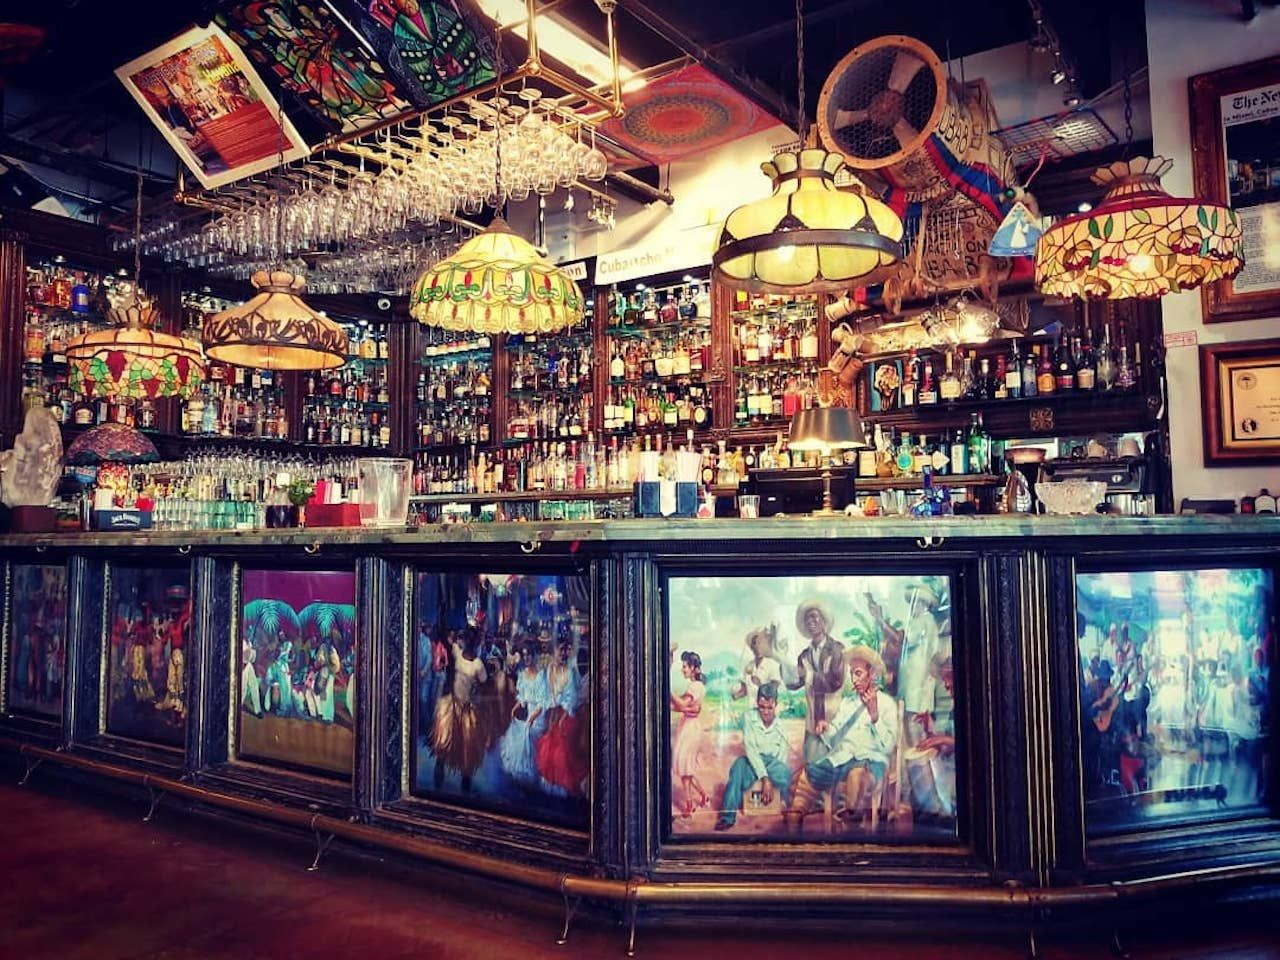 Bar at Cubaocho Museum in Miami, Florida